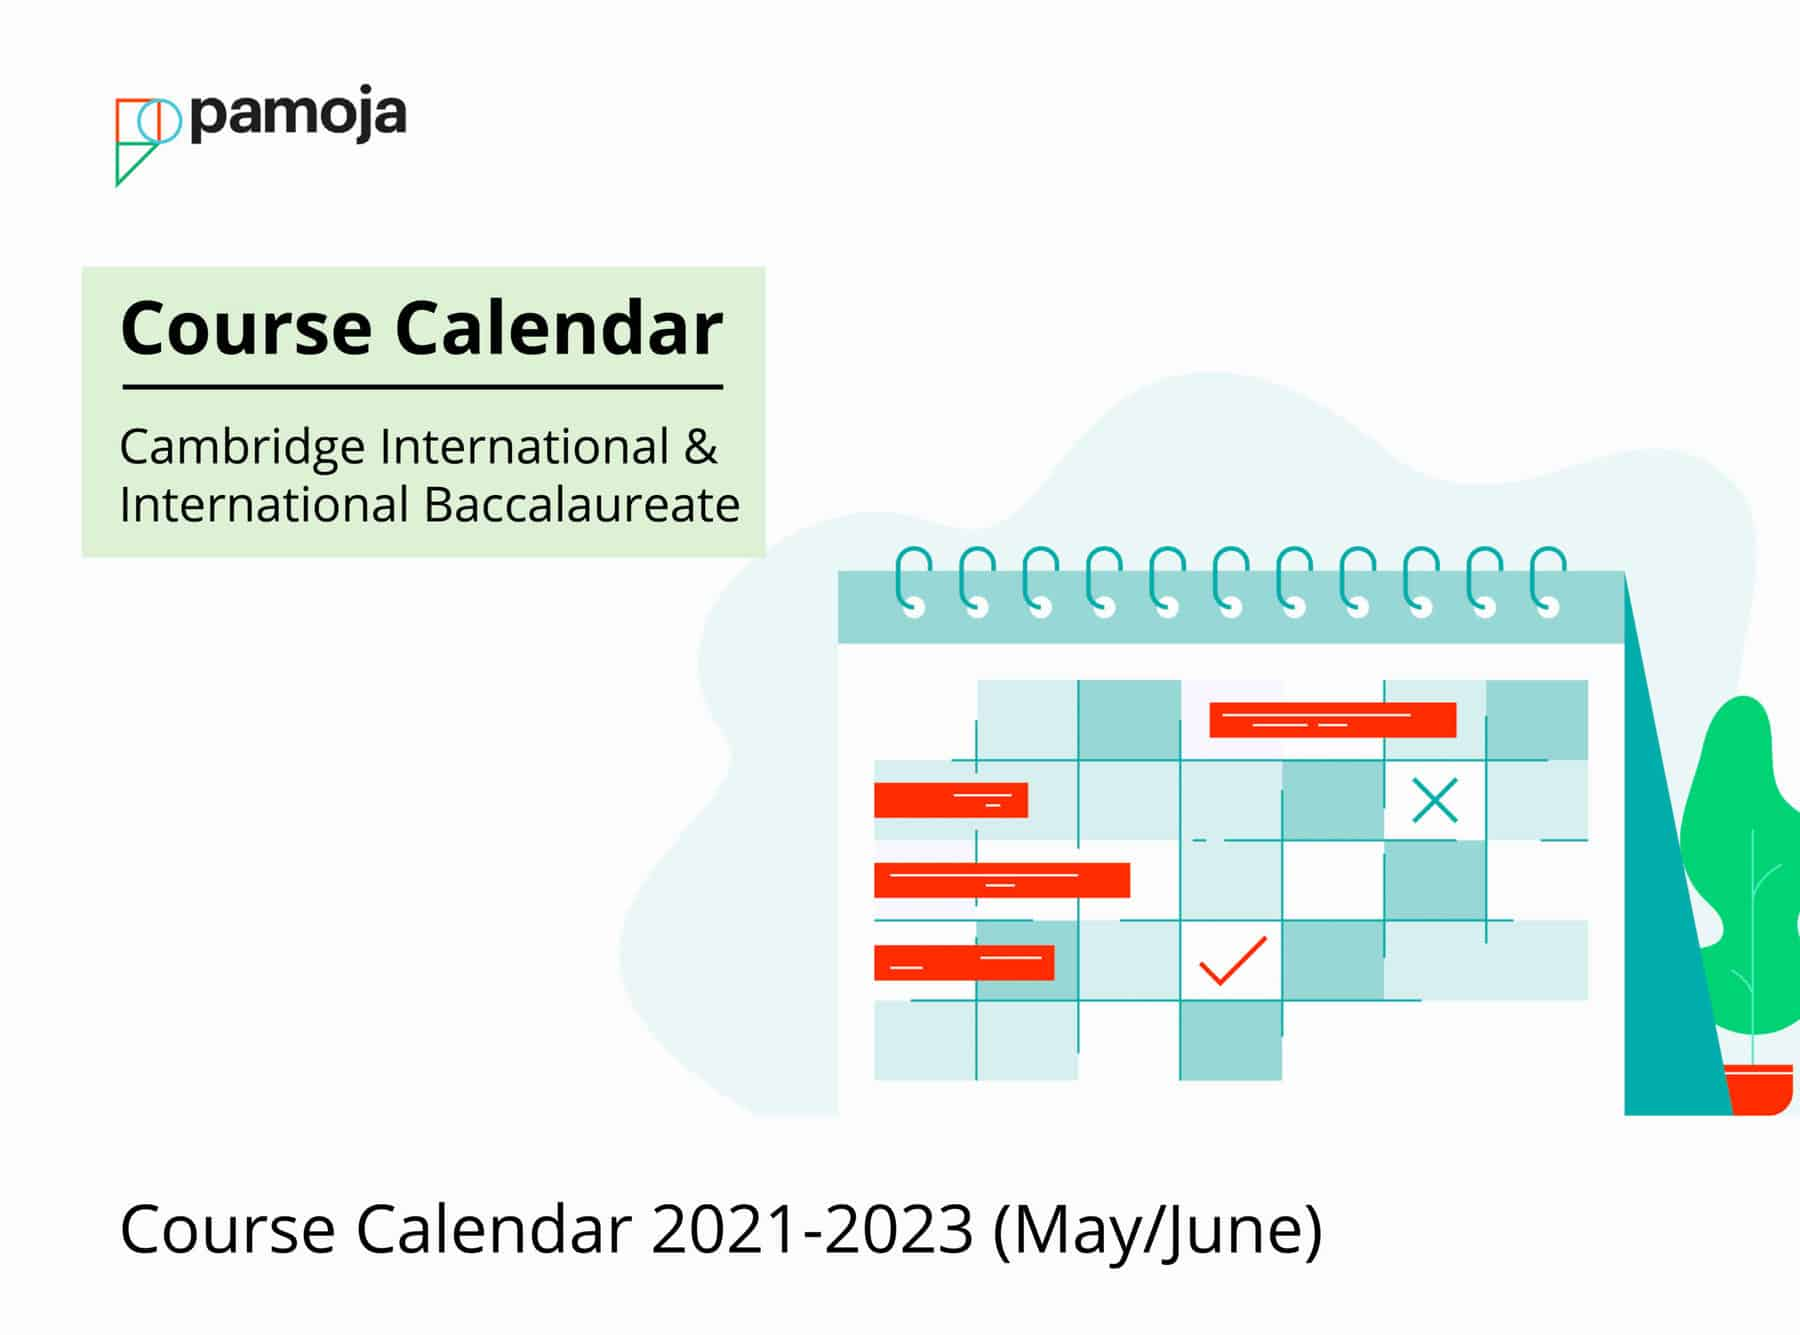 Course Calendar 2021/2023 (May/June)